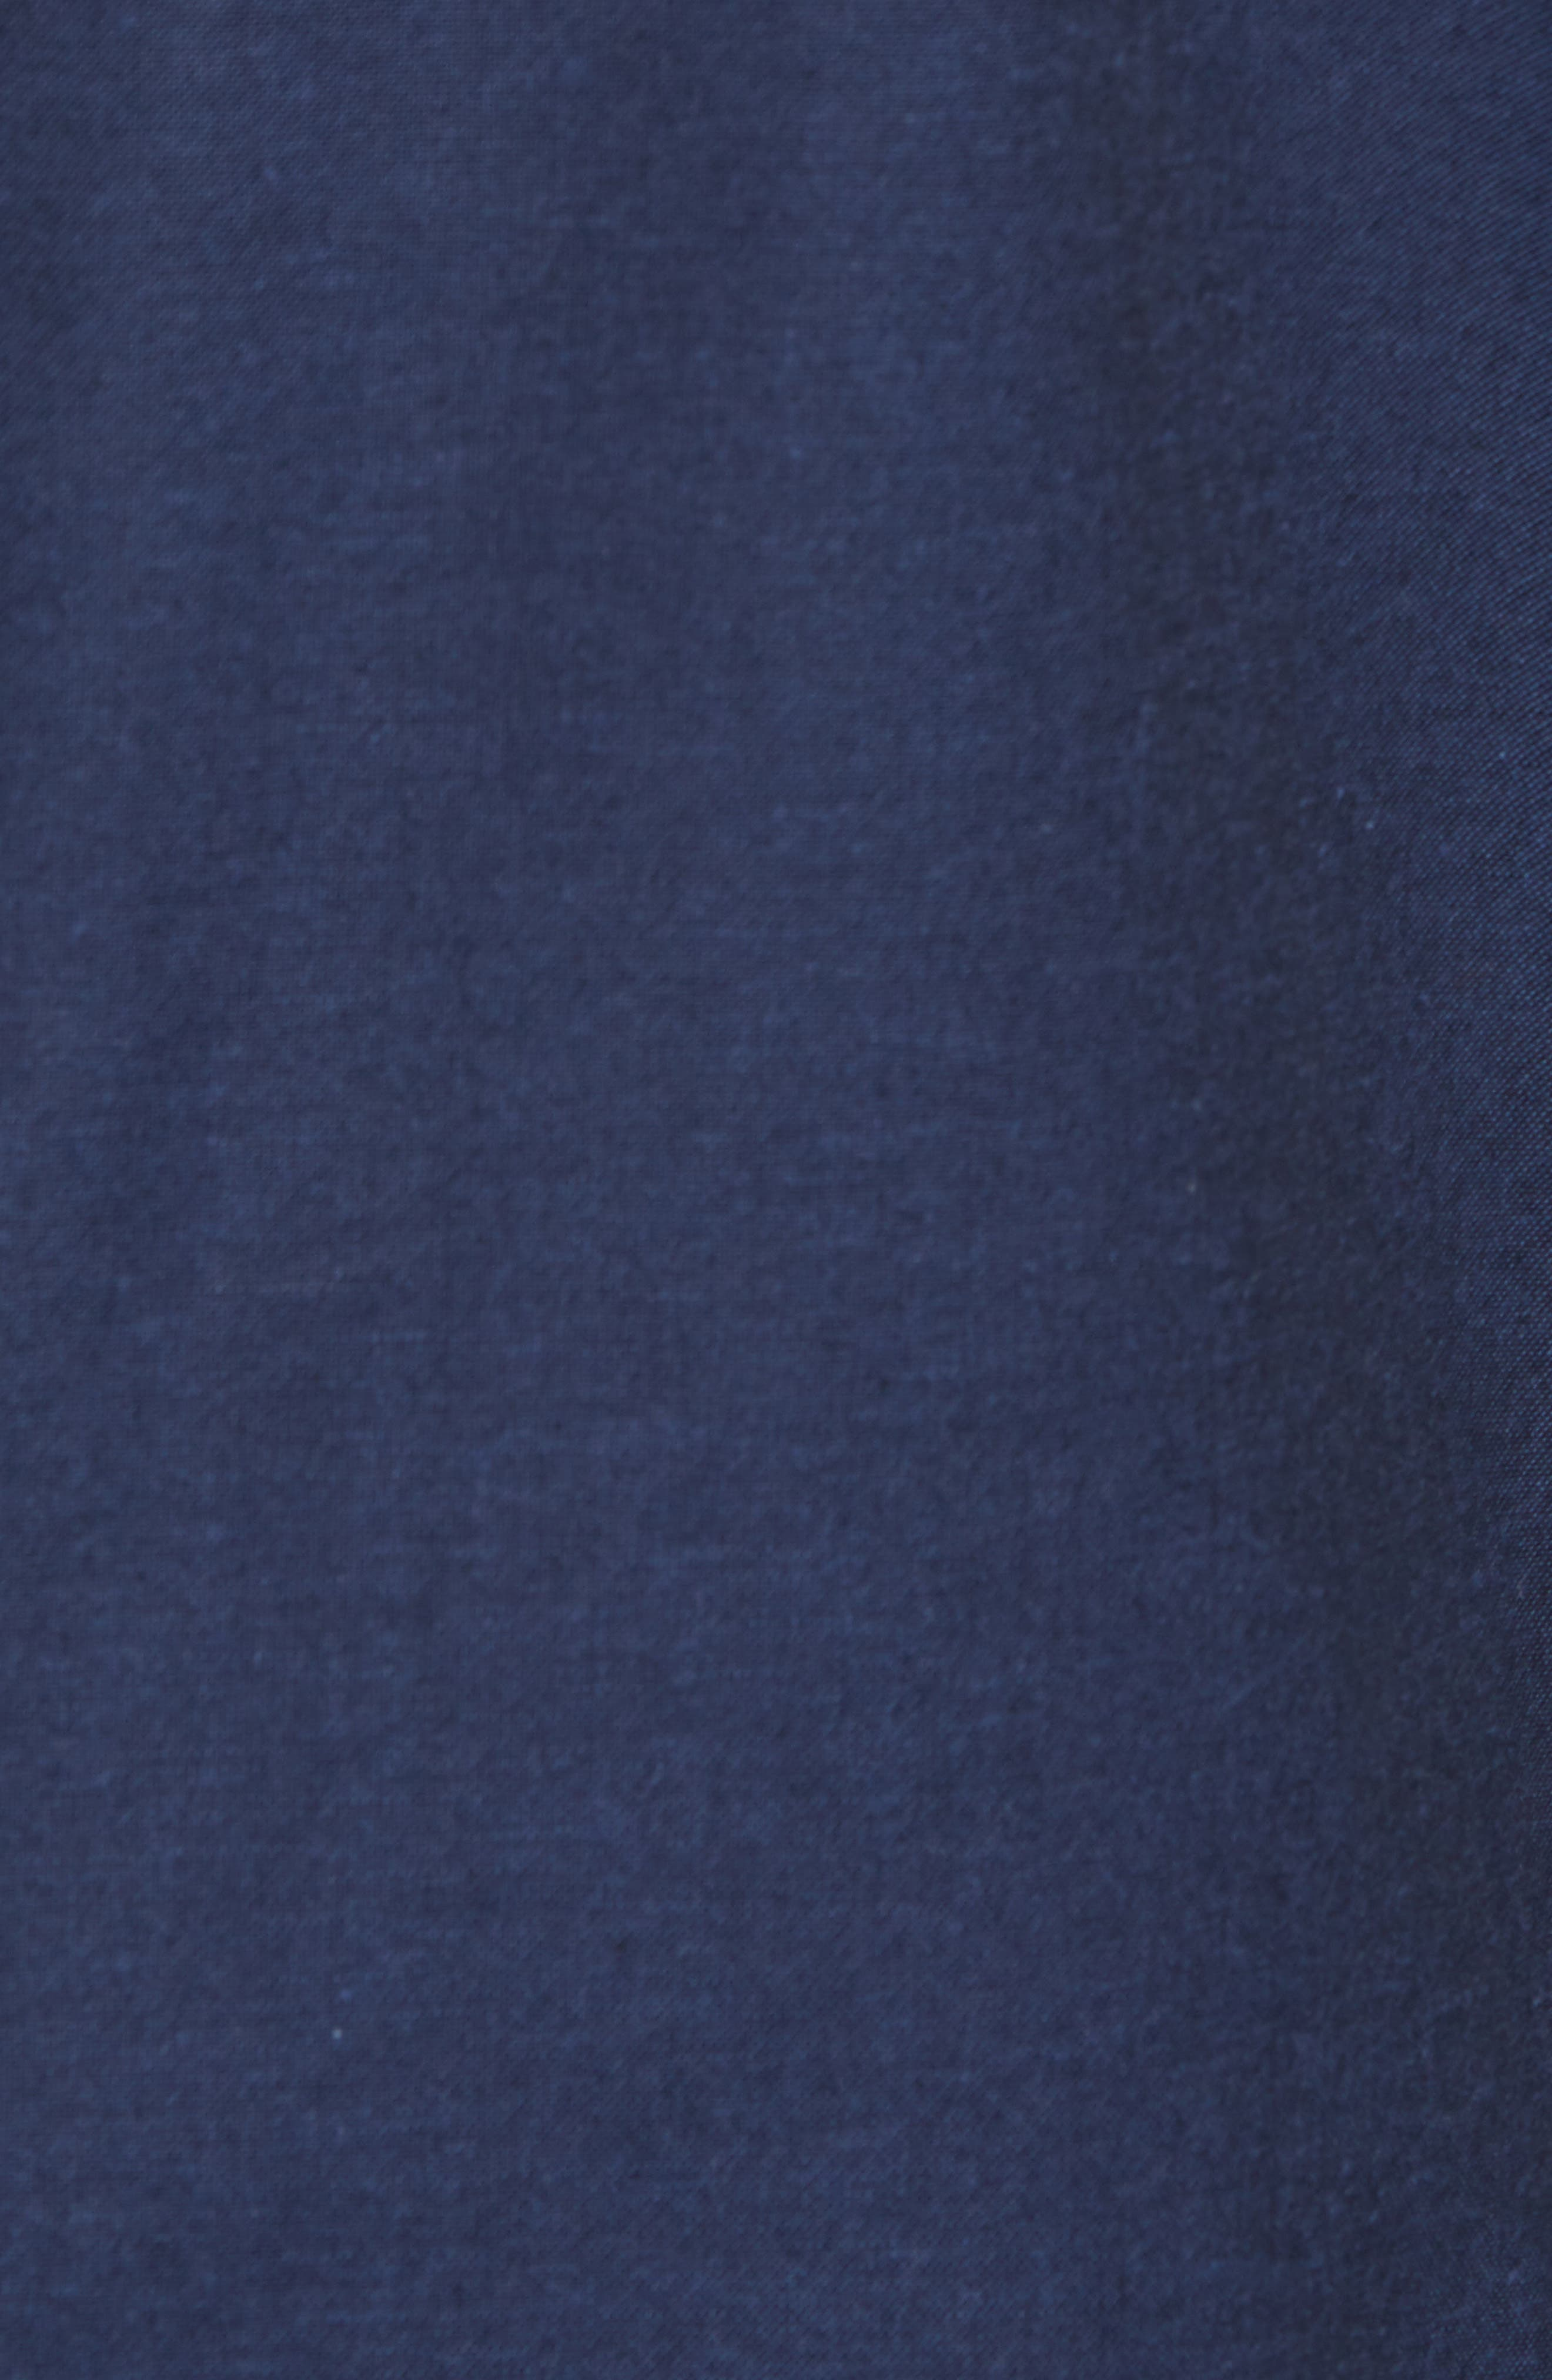 Washed Stretch Cotton Blazer,                             Alternate thumbnail 6, color,                             410